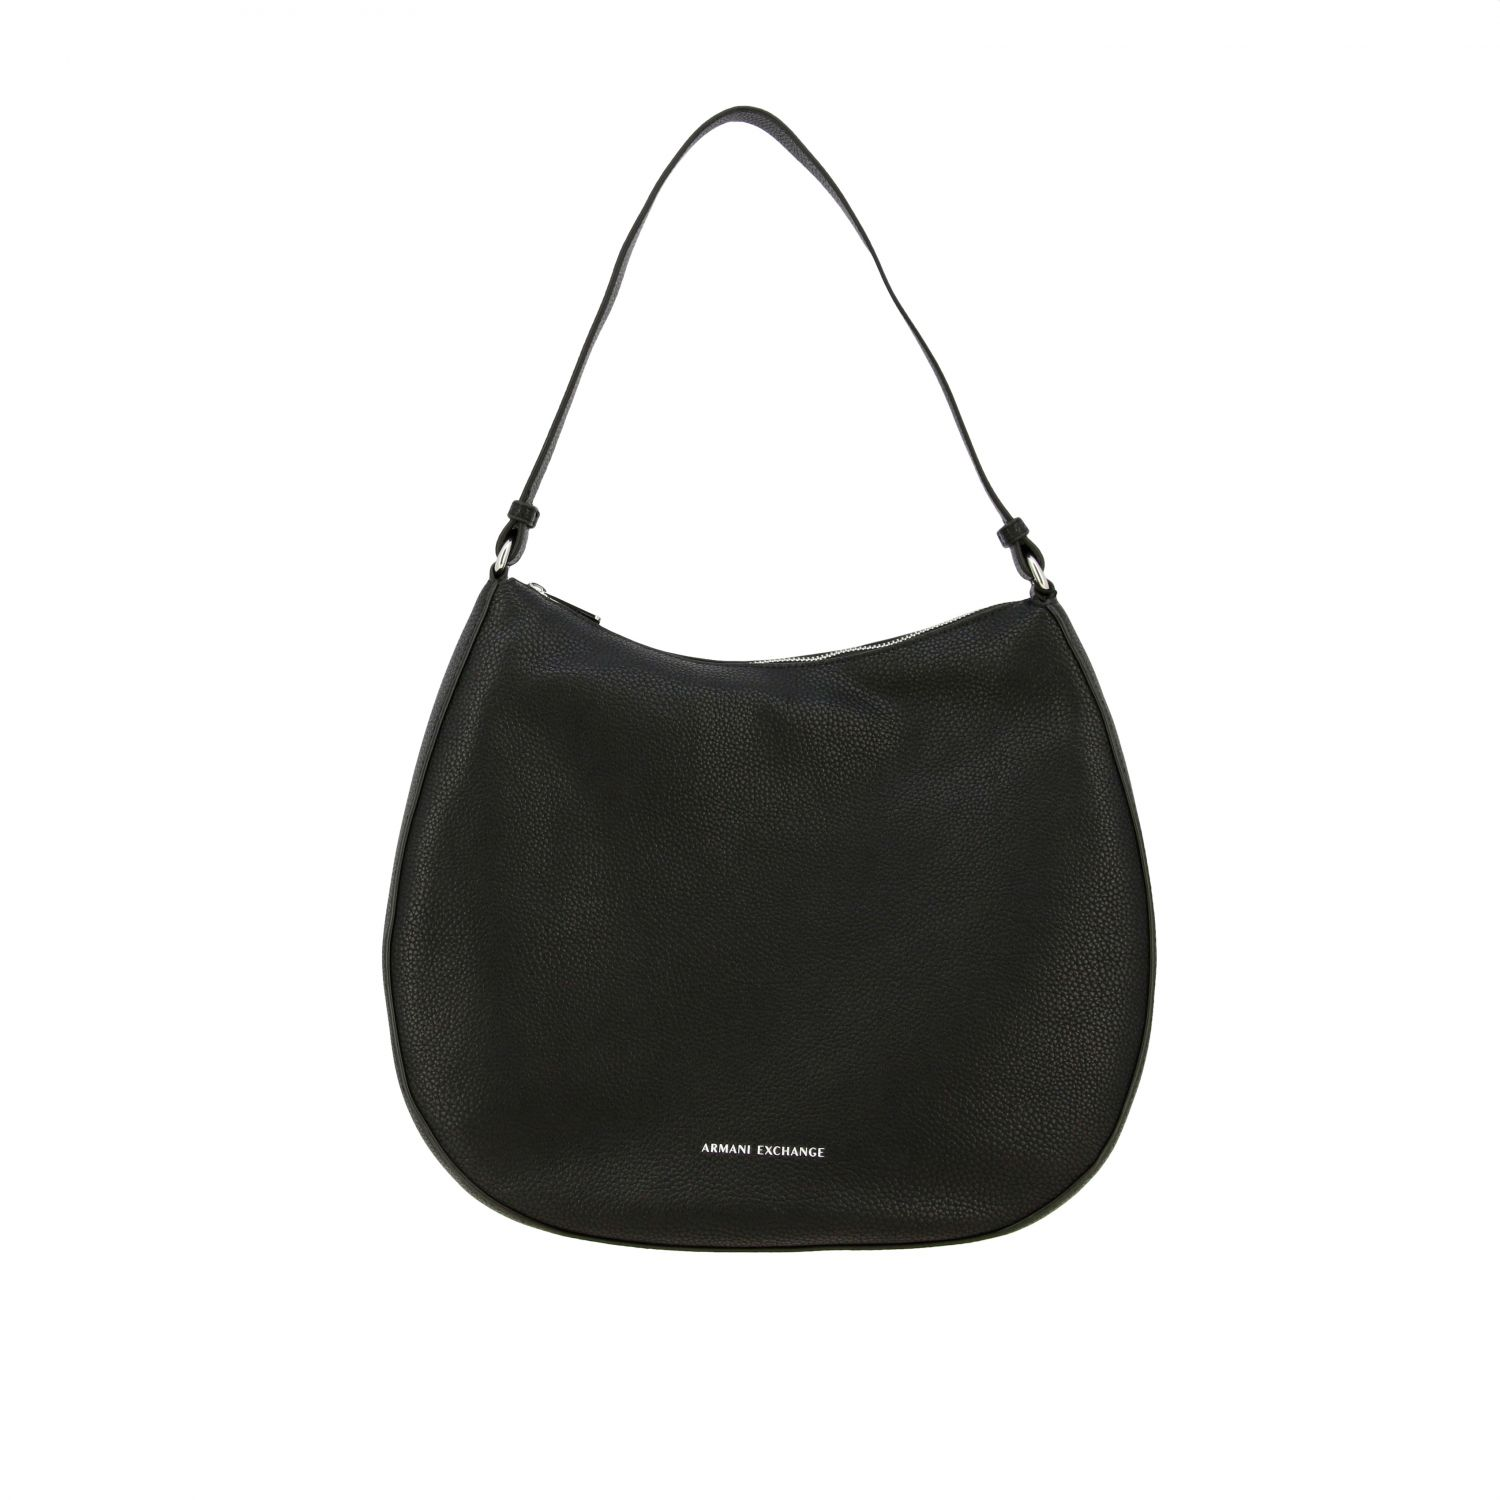 BORSA BORSE DONNA ARMANI EXCHANGE HOBO BAG 942619 00020 ECO PELLE ORIGINAL AI